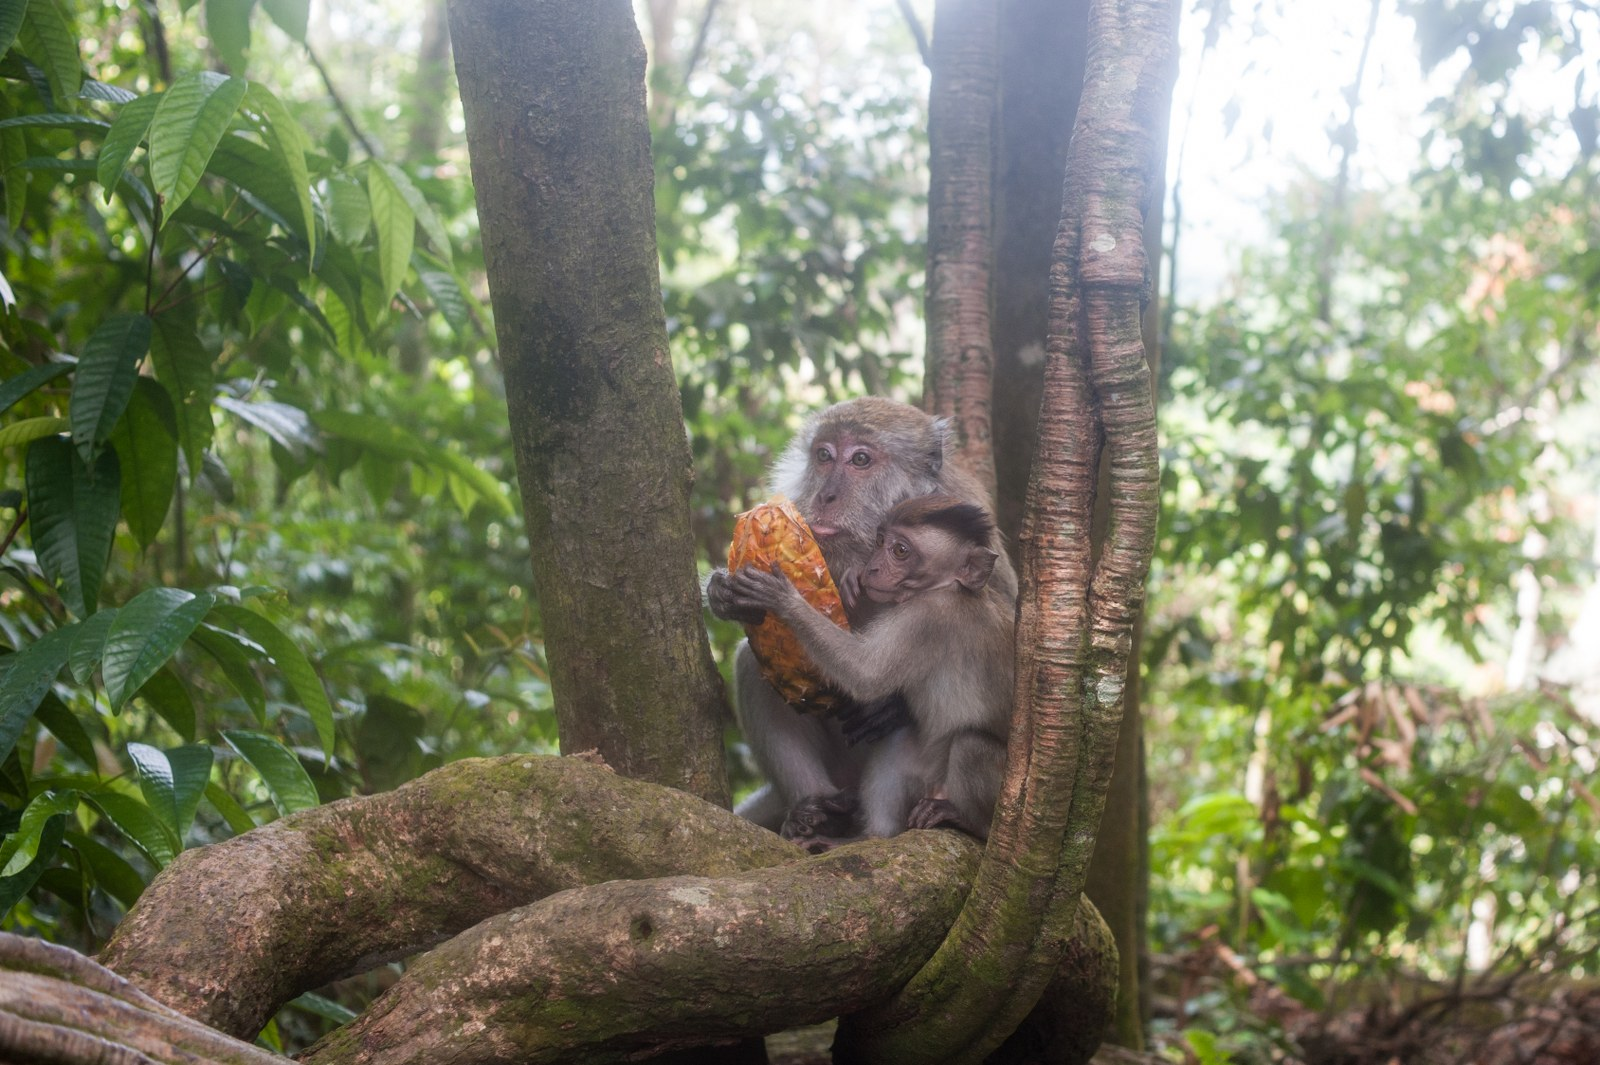 Of course, no jungle is complete without the common long-tailed macaques. Mother and child seen here sharing remains of a pineapple.